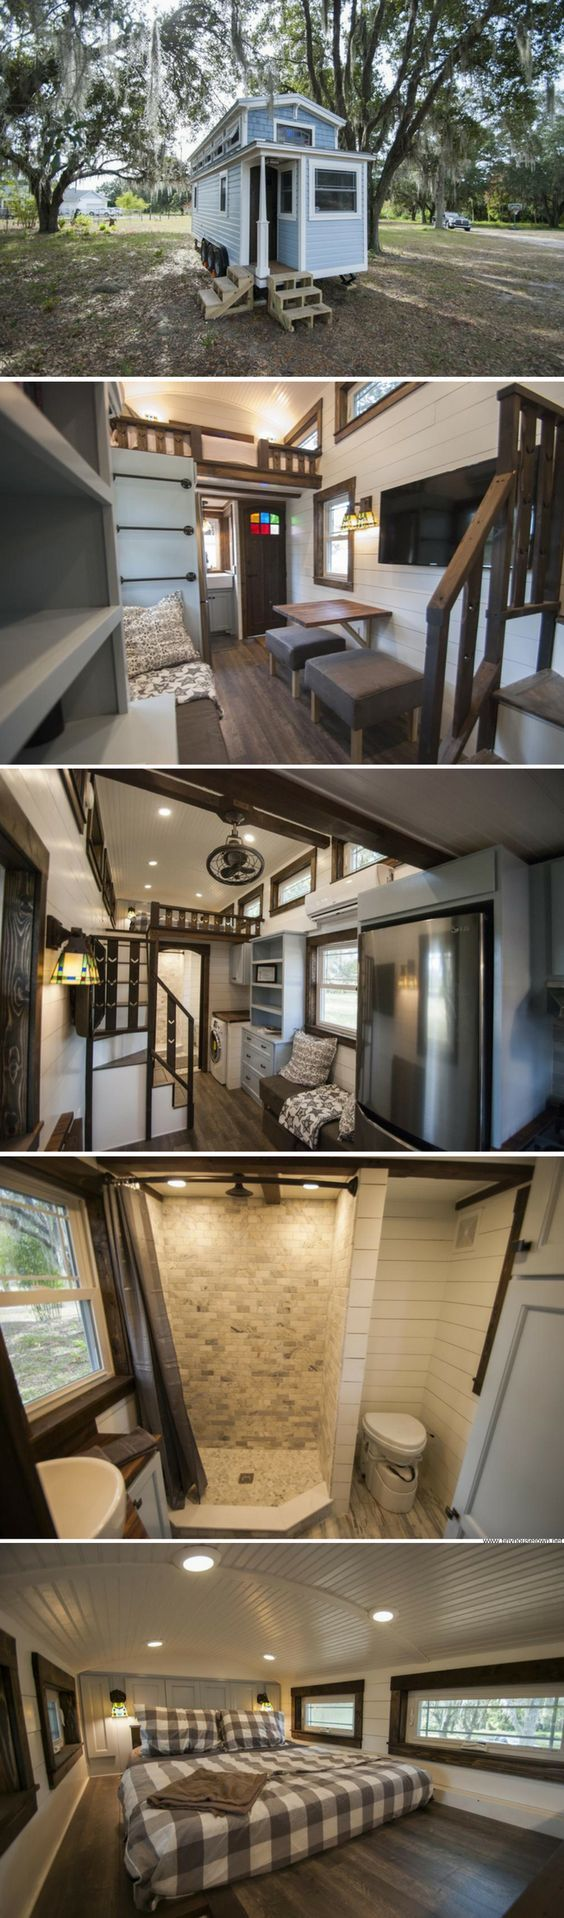 Best 25+ Tiny house movement ideas on Pinterest | Mini homes, Tiny homes  and Tiny houses